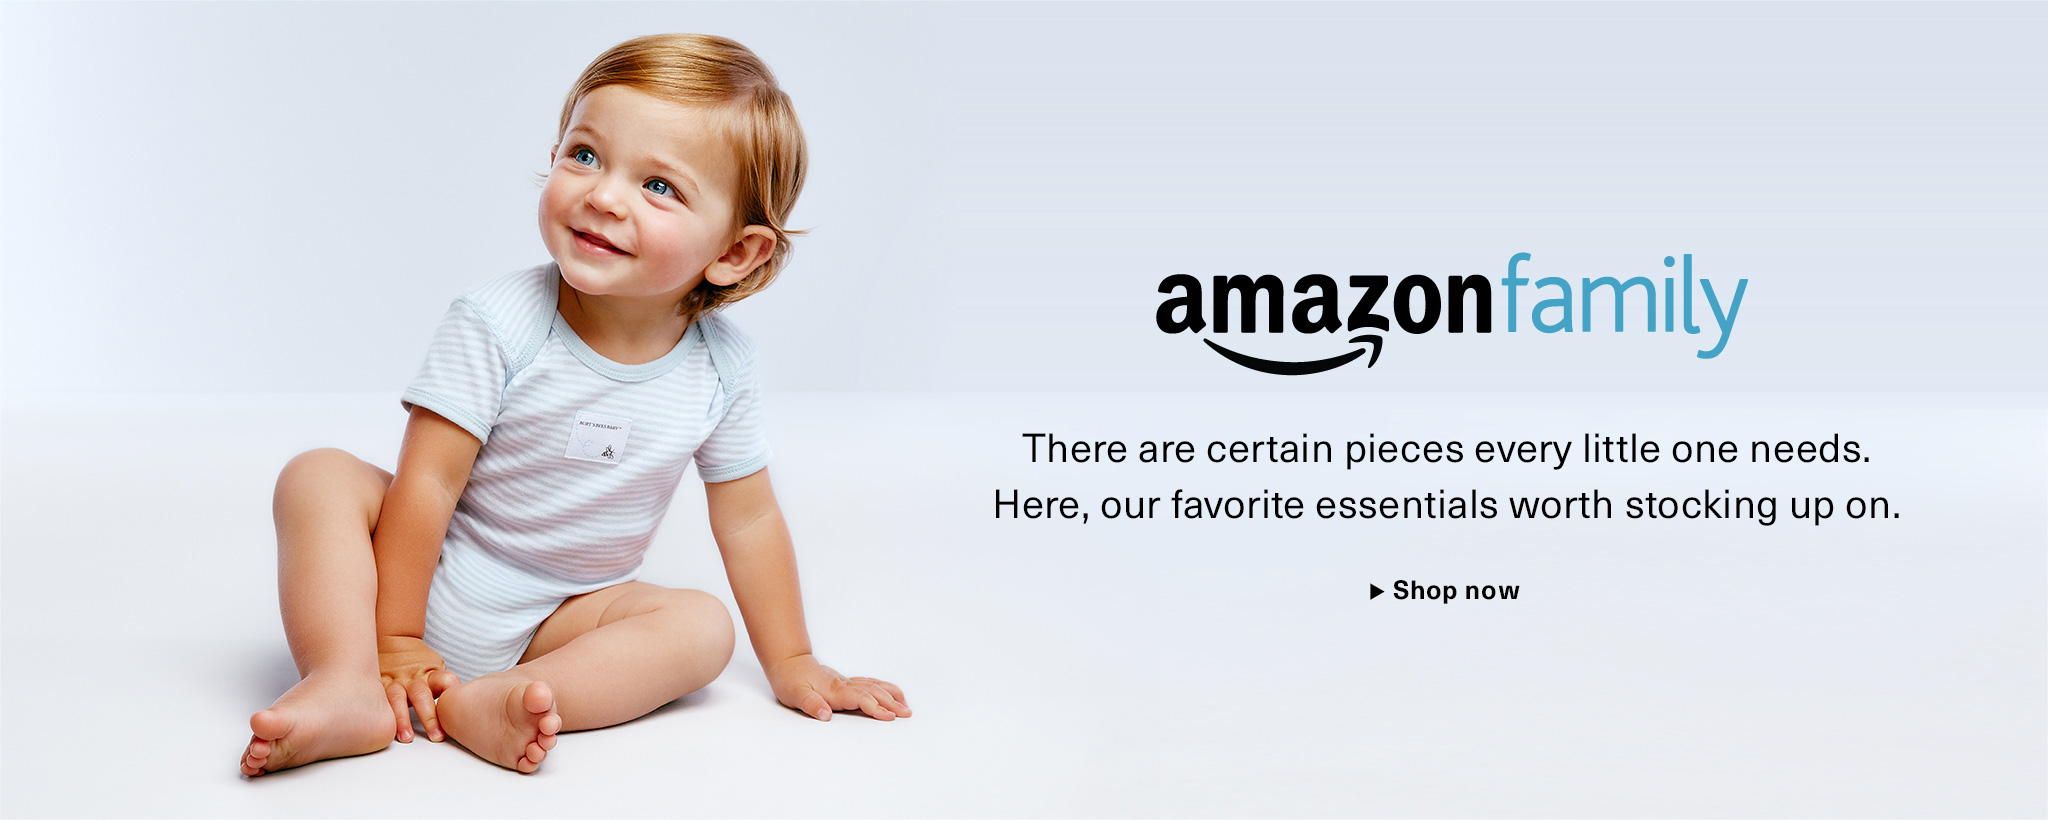 Vika Pobeda - Baby Photography Amazon Baby Basics